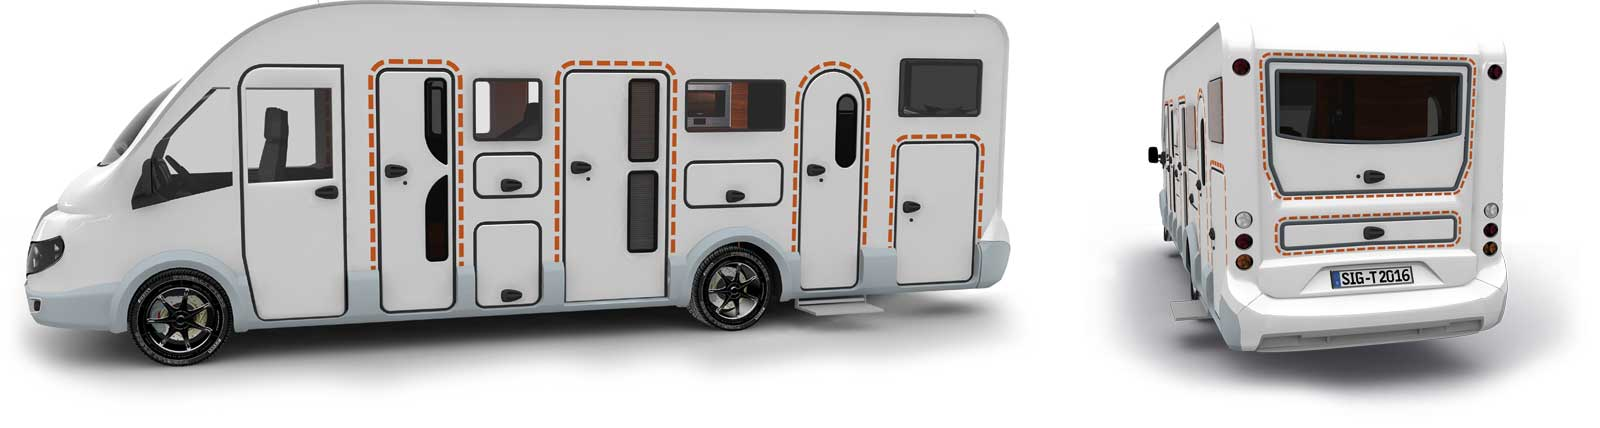 Satisfied tegos customers with bwheelchair-accessible caravans and RVs